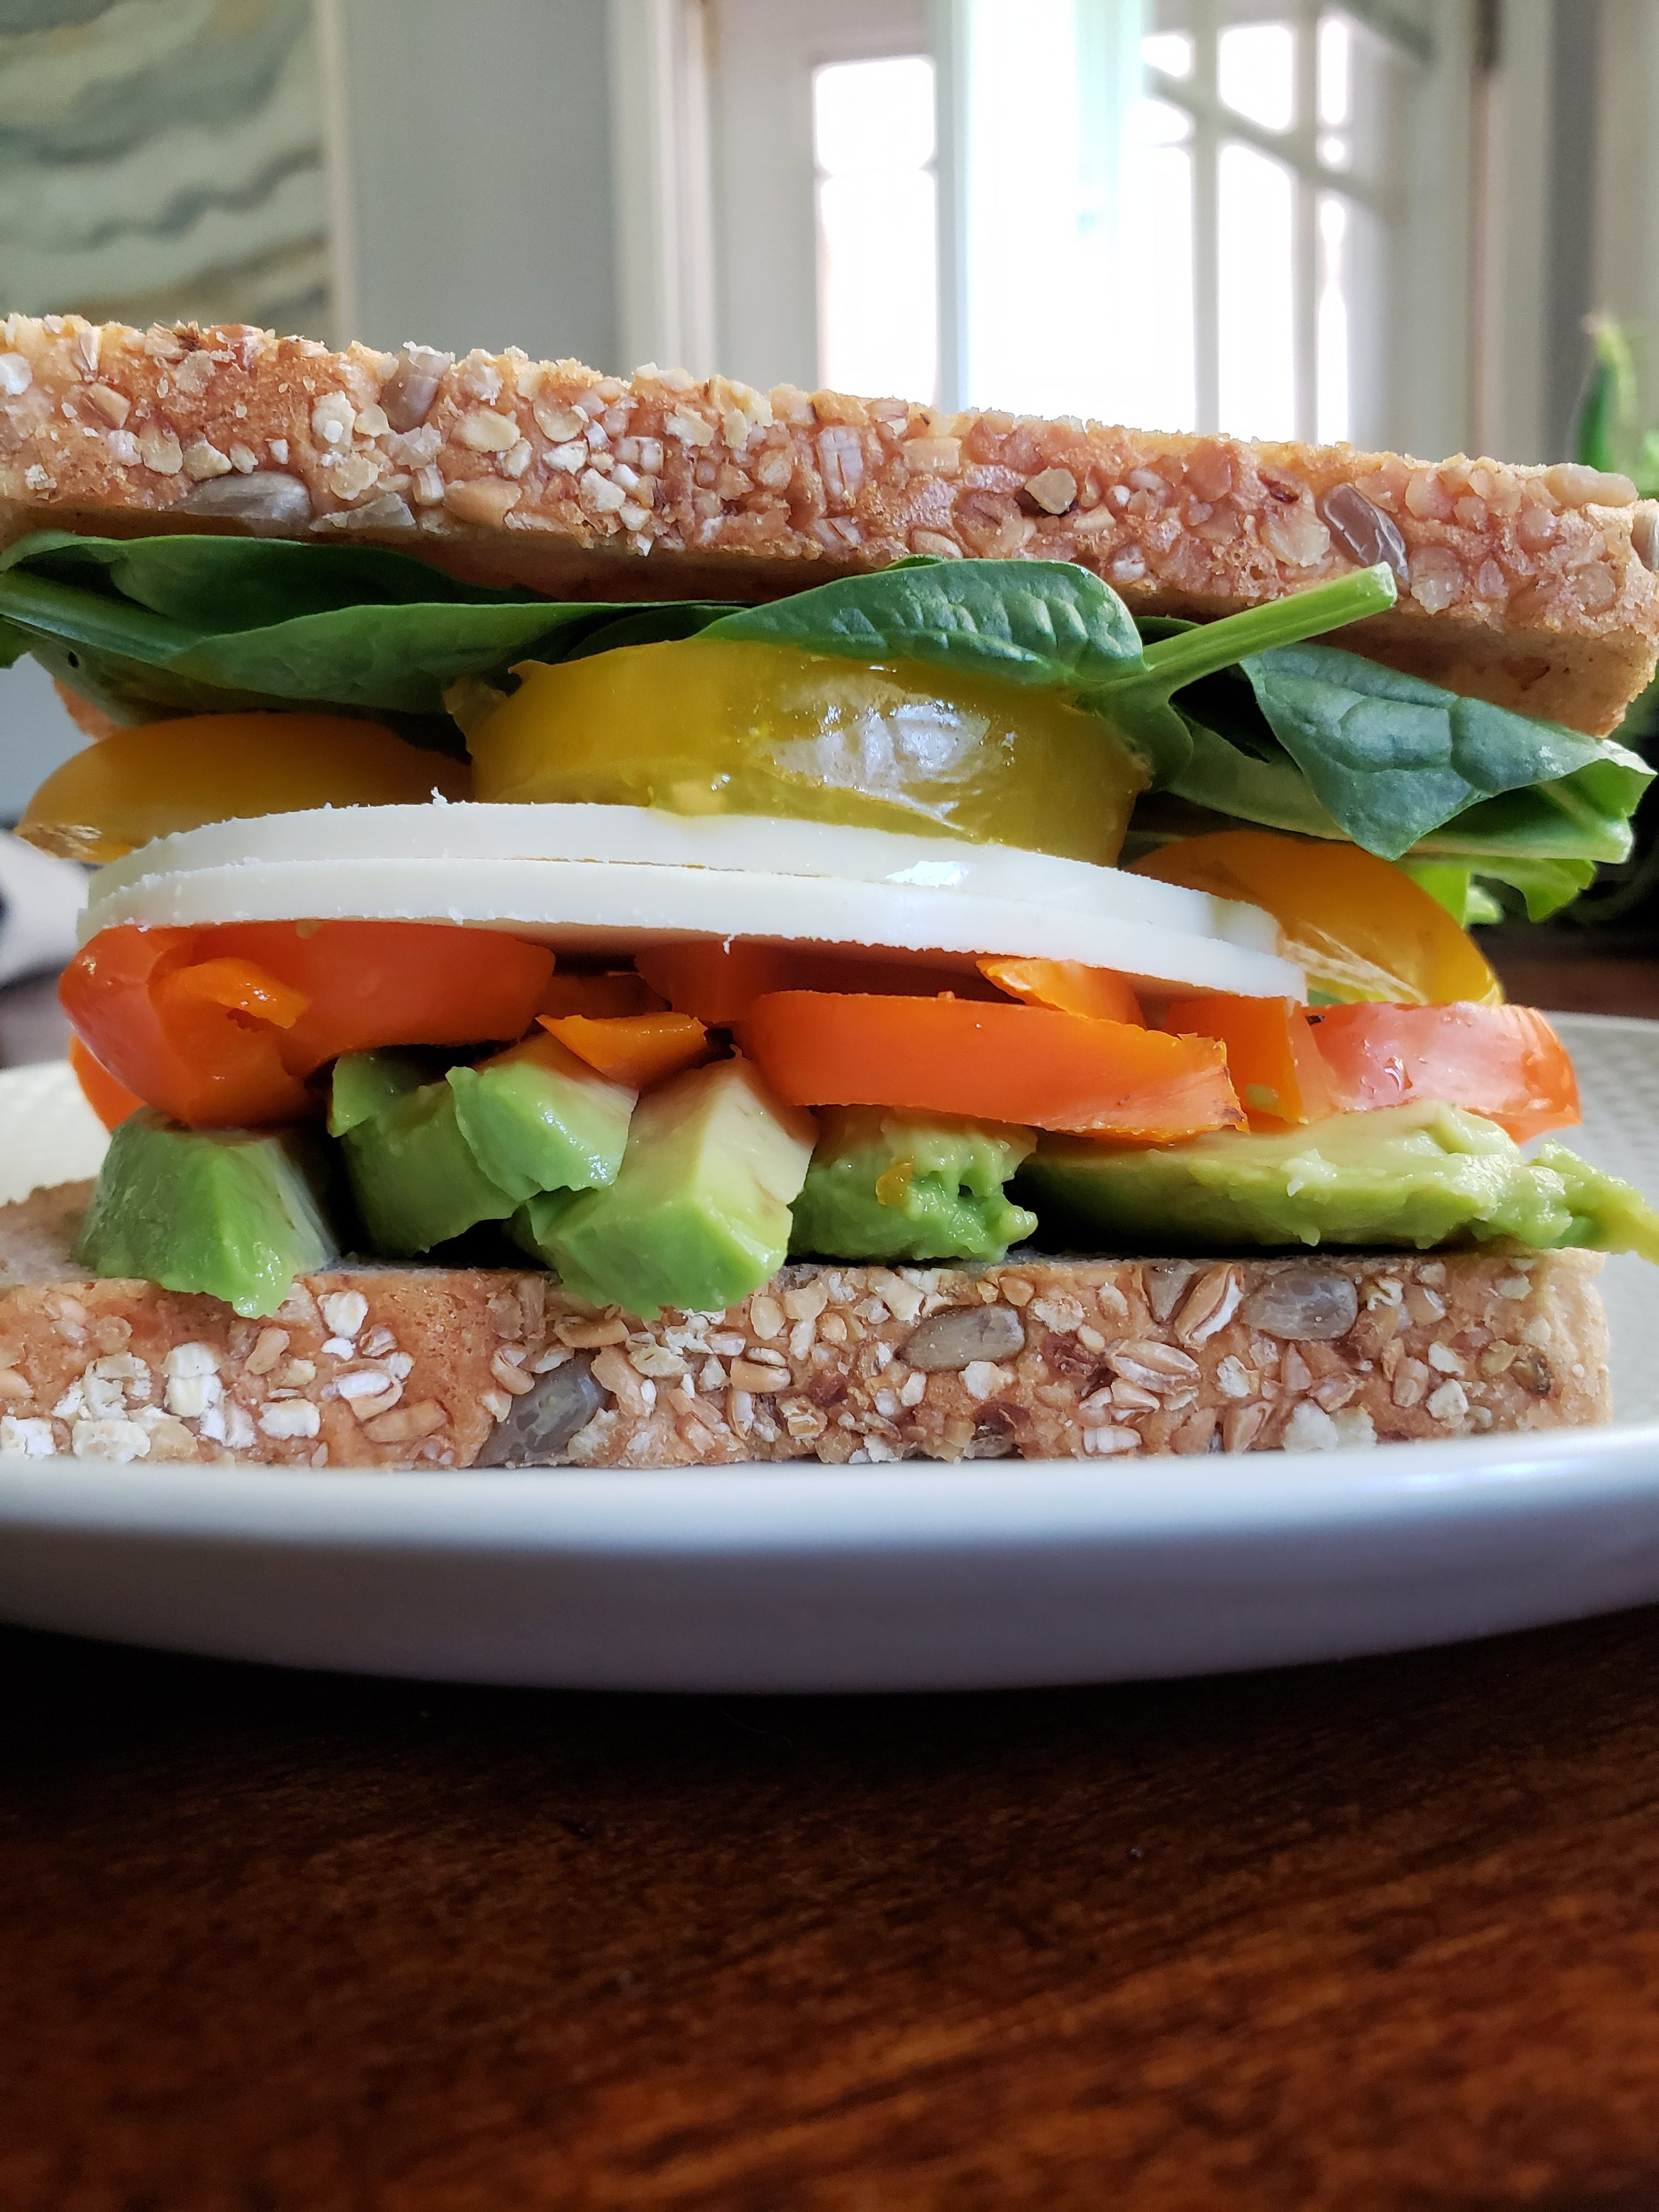 The options are endless for this sandwich and you can pack this one for lunch easily!